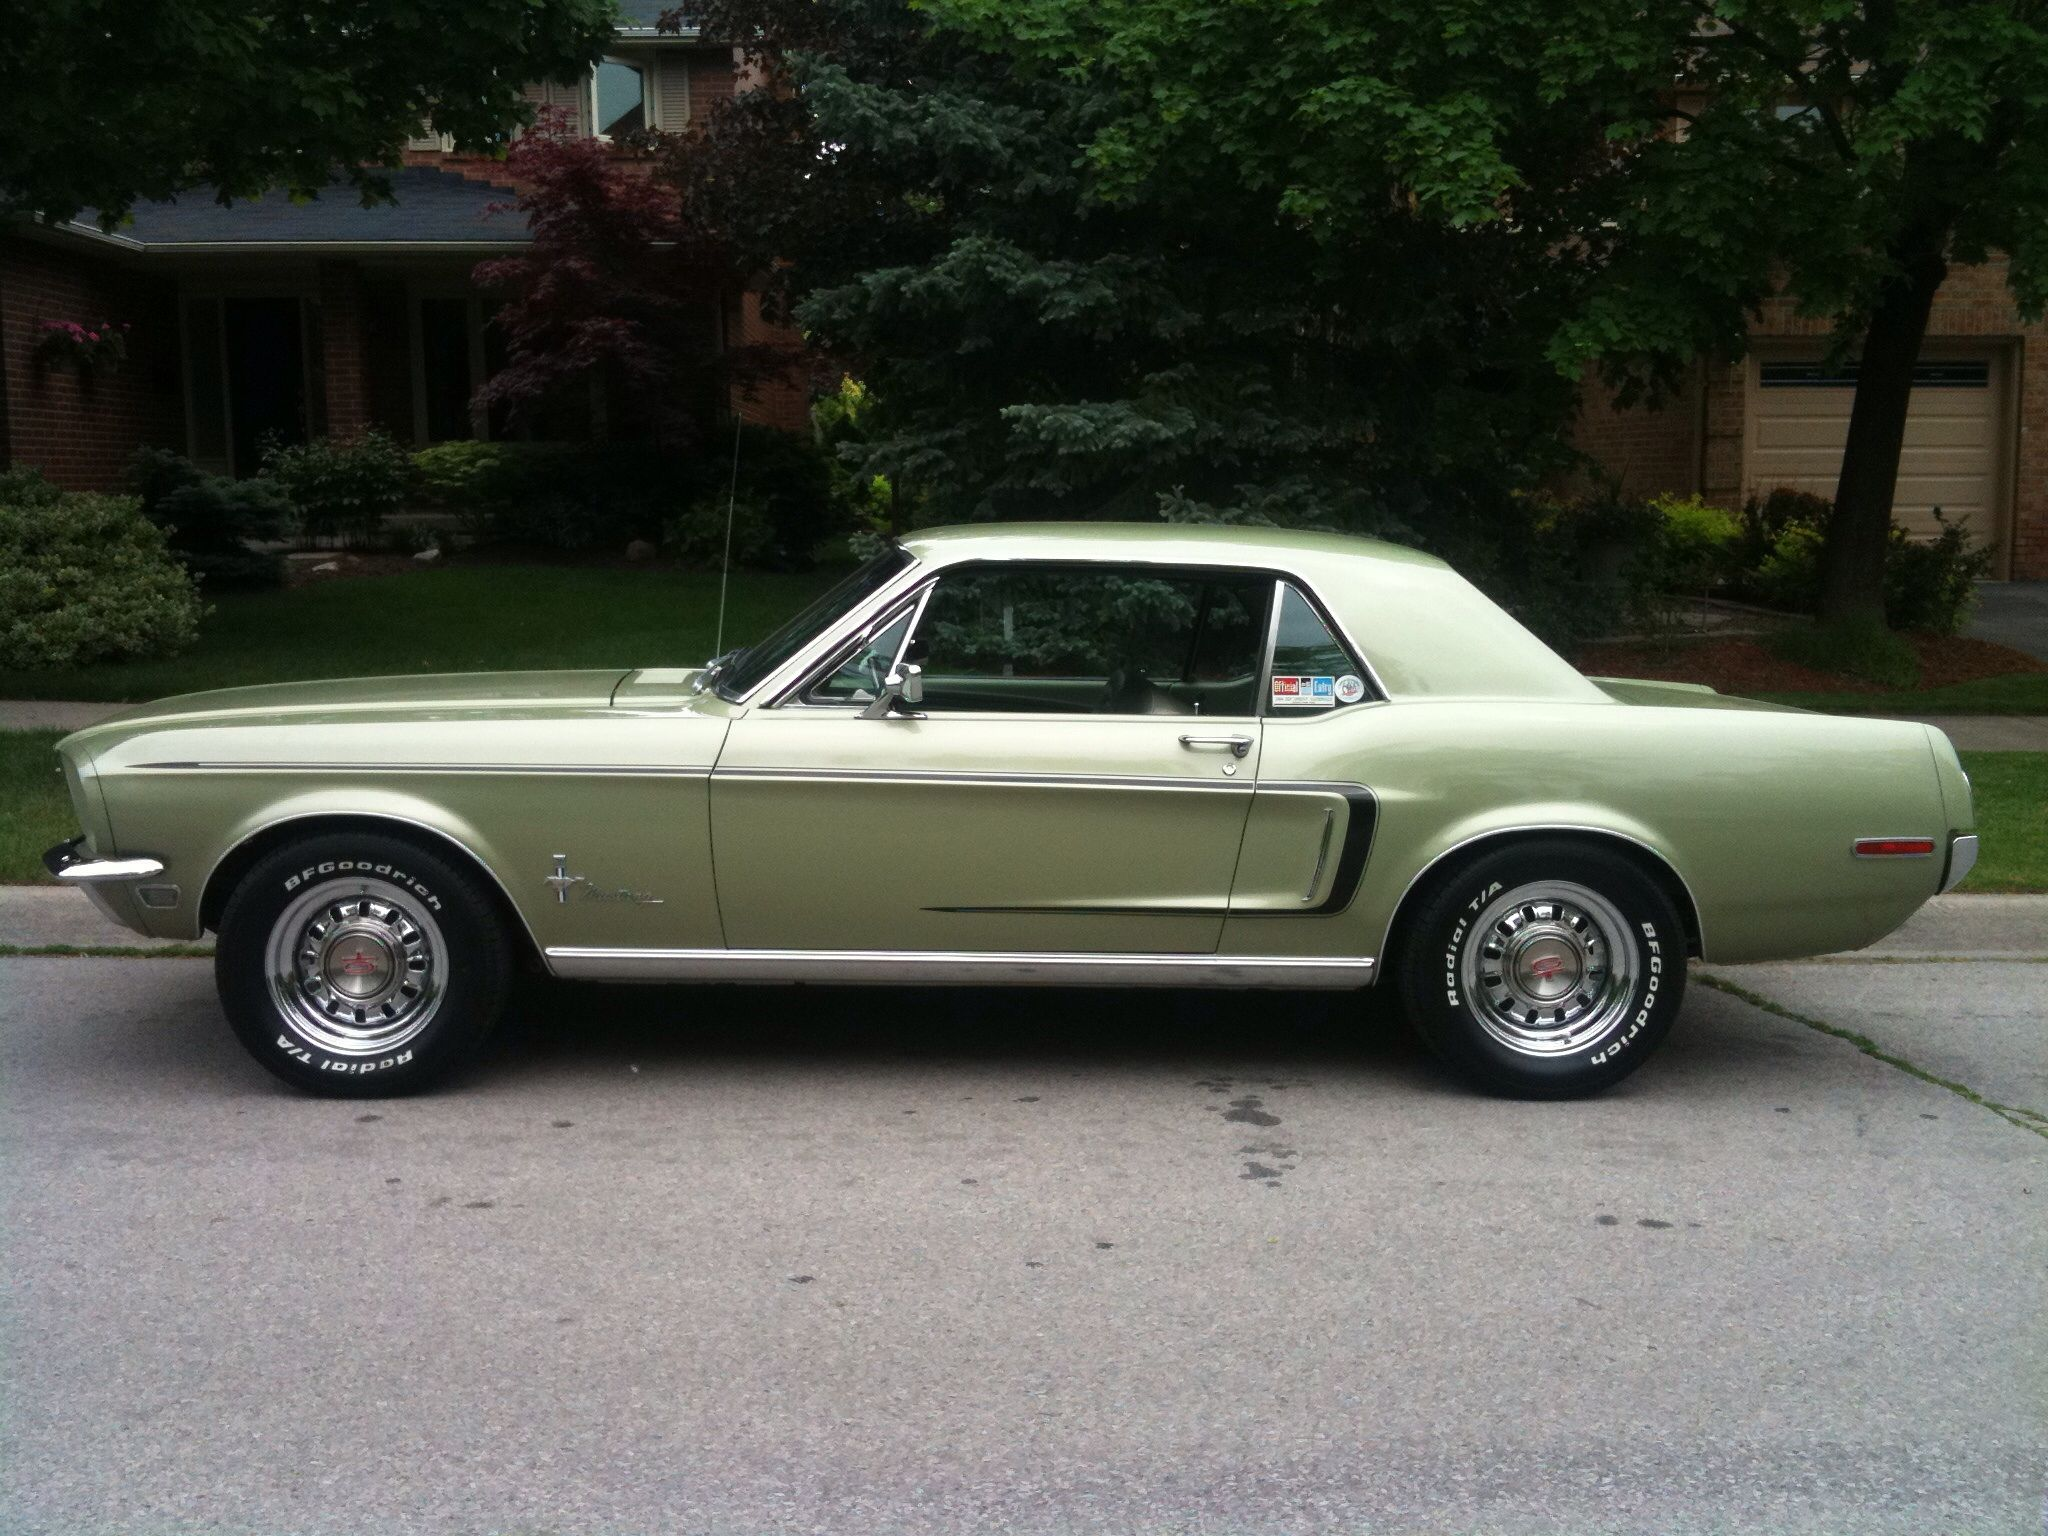 My 68 Lime Gold Mustang | Drivers resume | Pinterest | Mustang, Ford ...